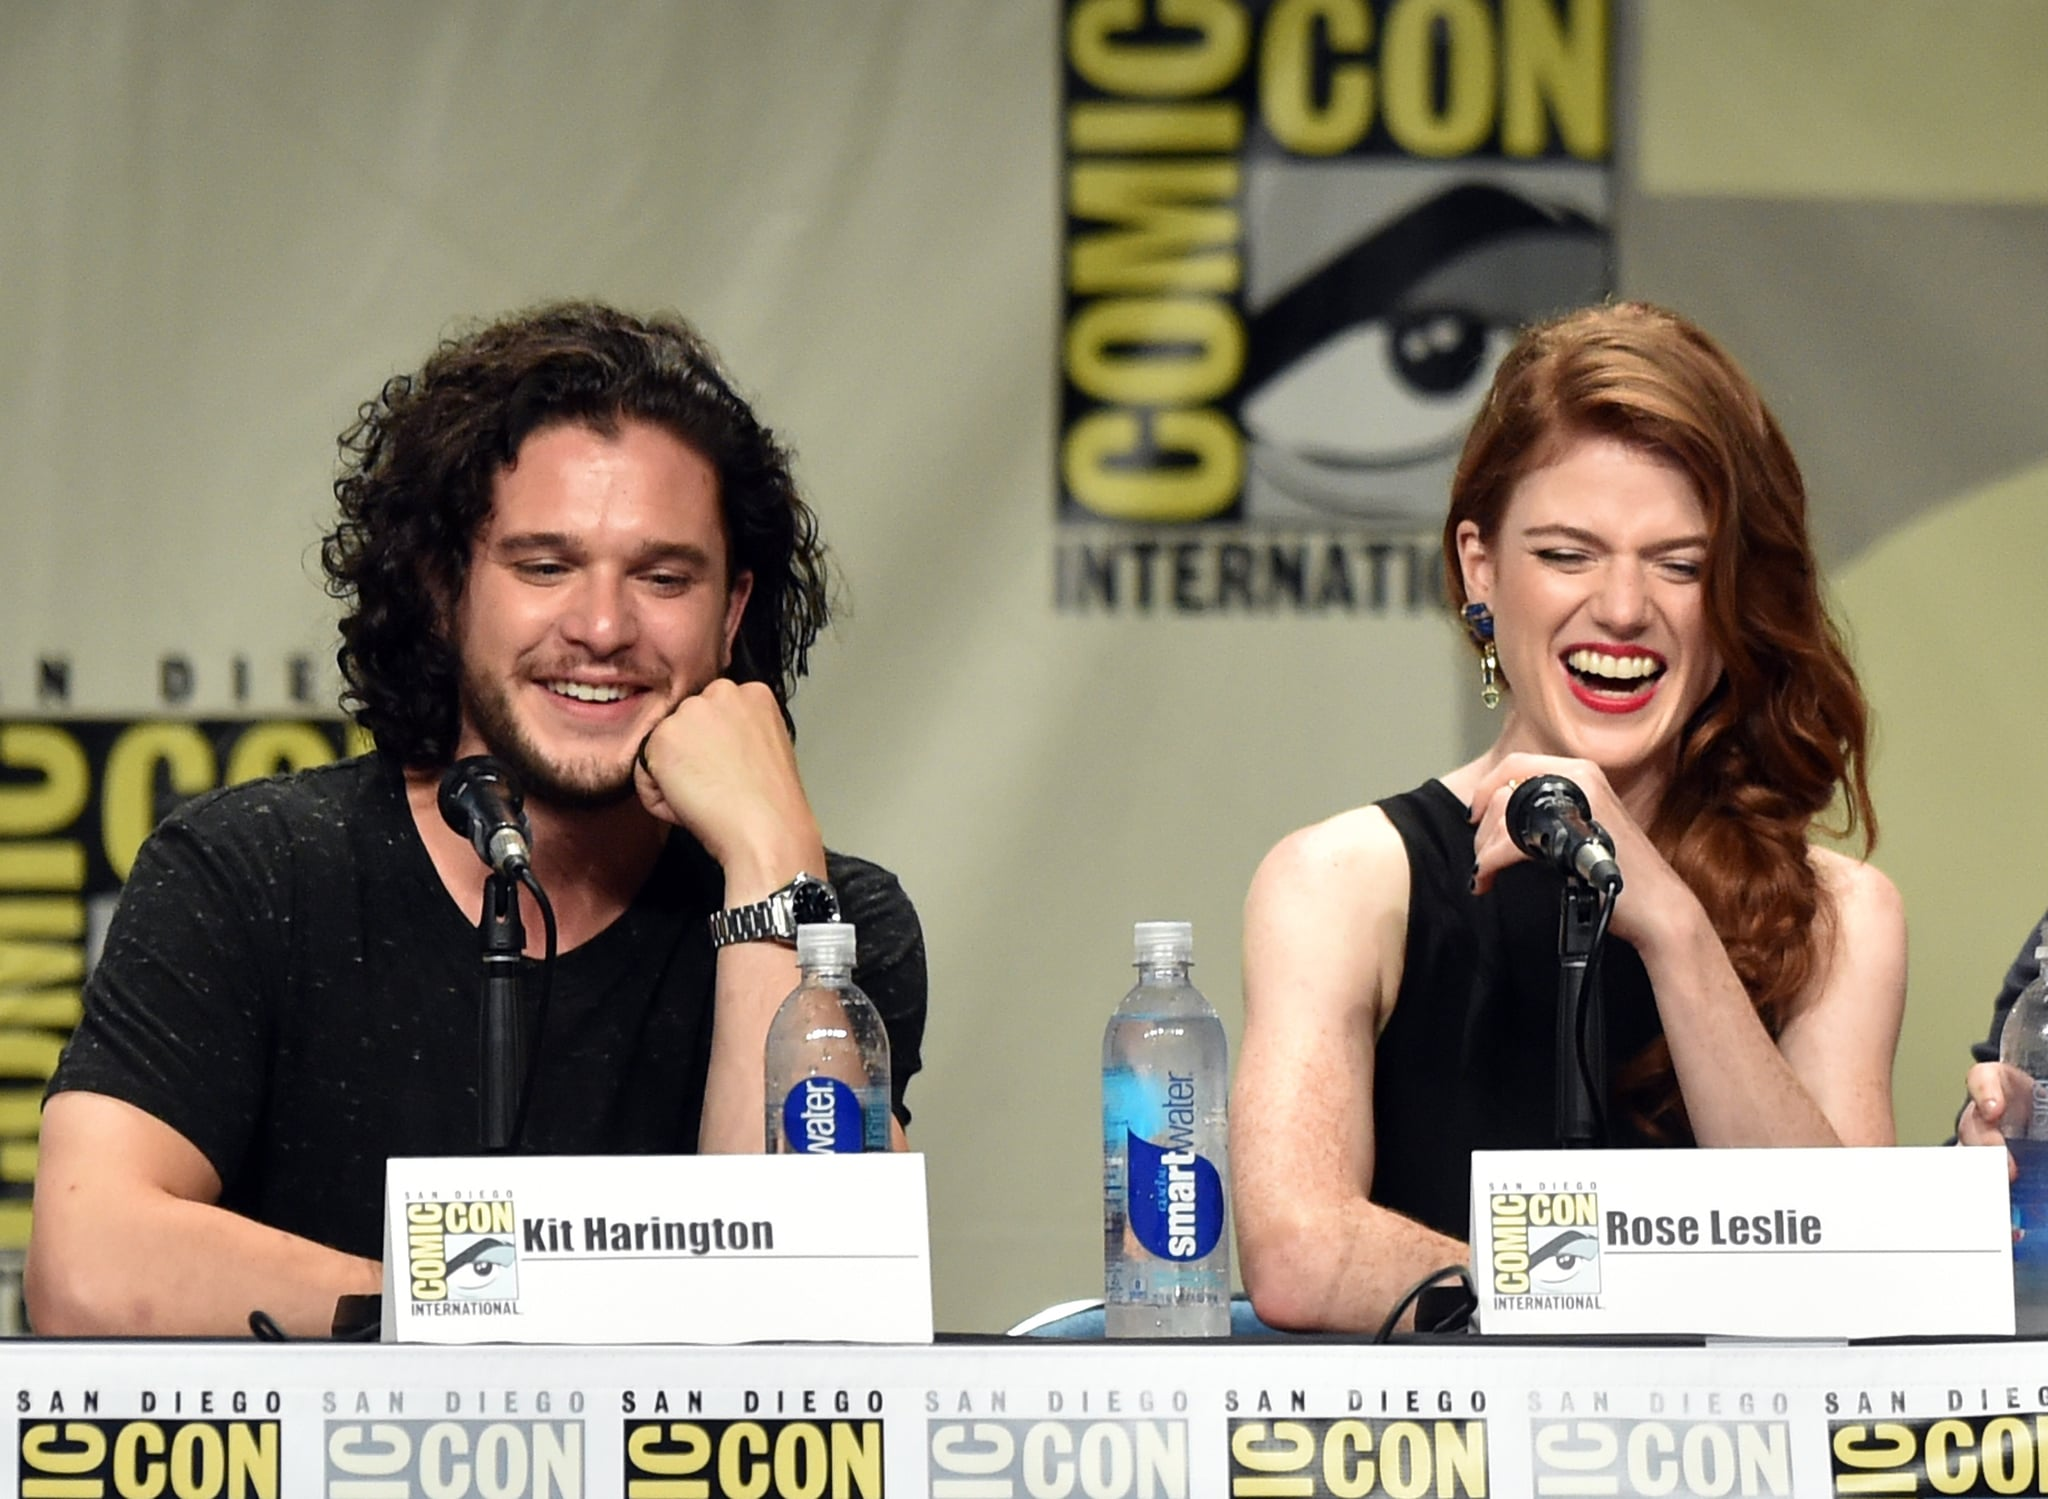 The Guys From Game of Thrones Unleash Their Cuteness at Comic-Con